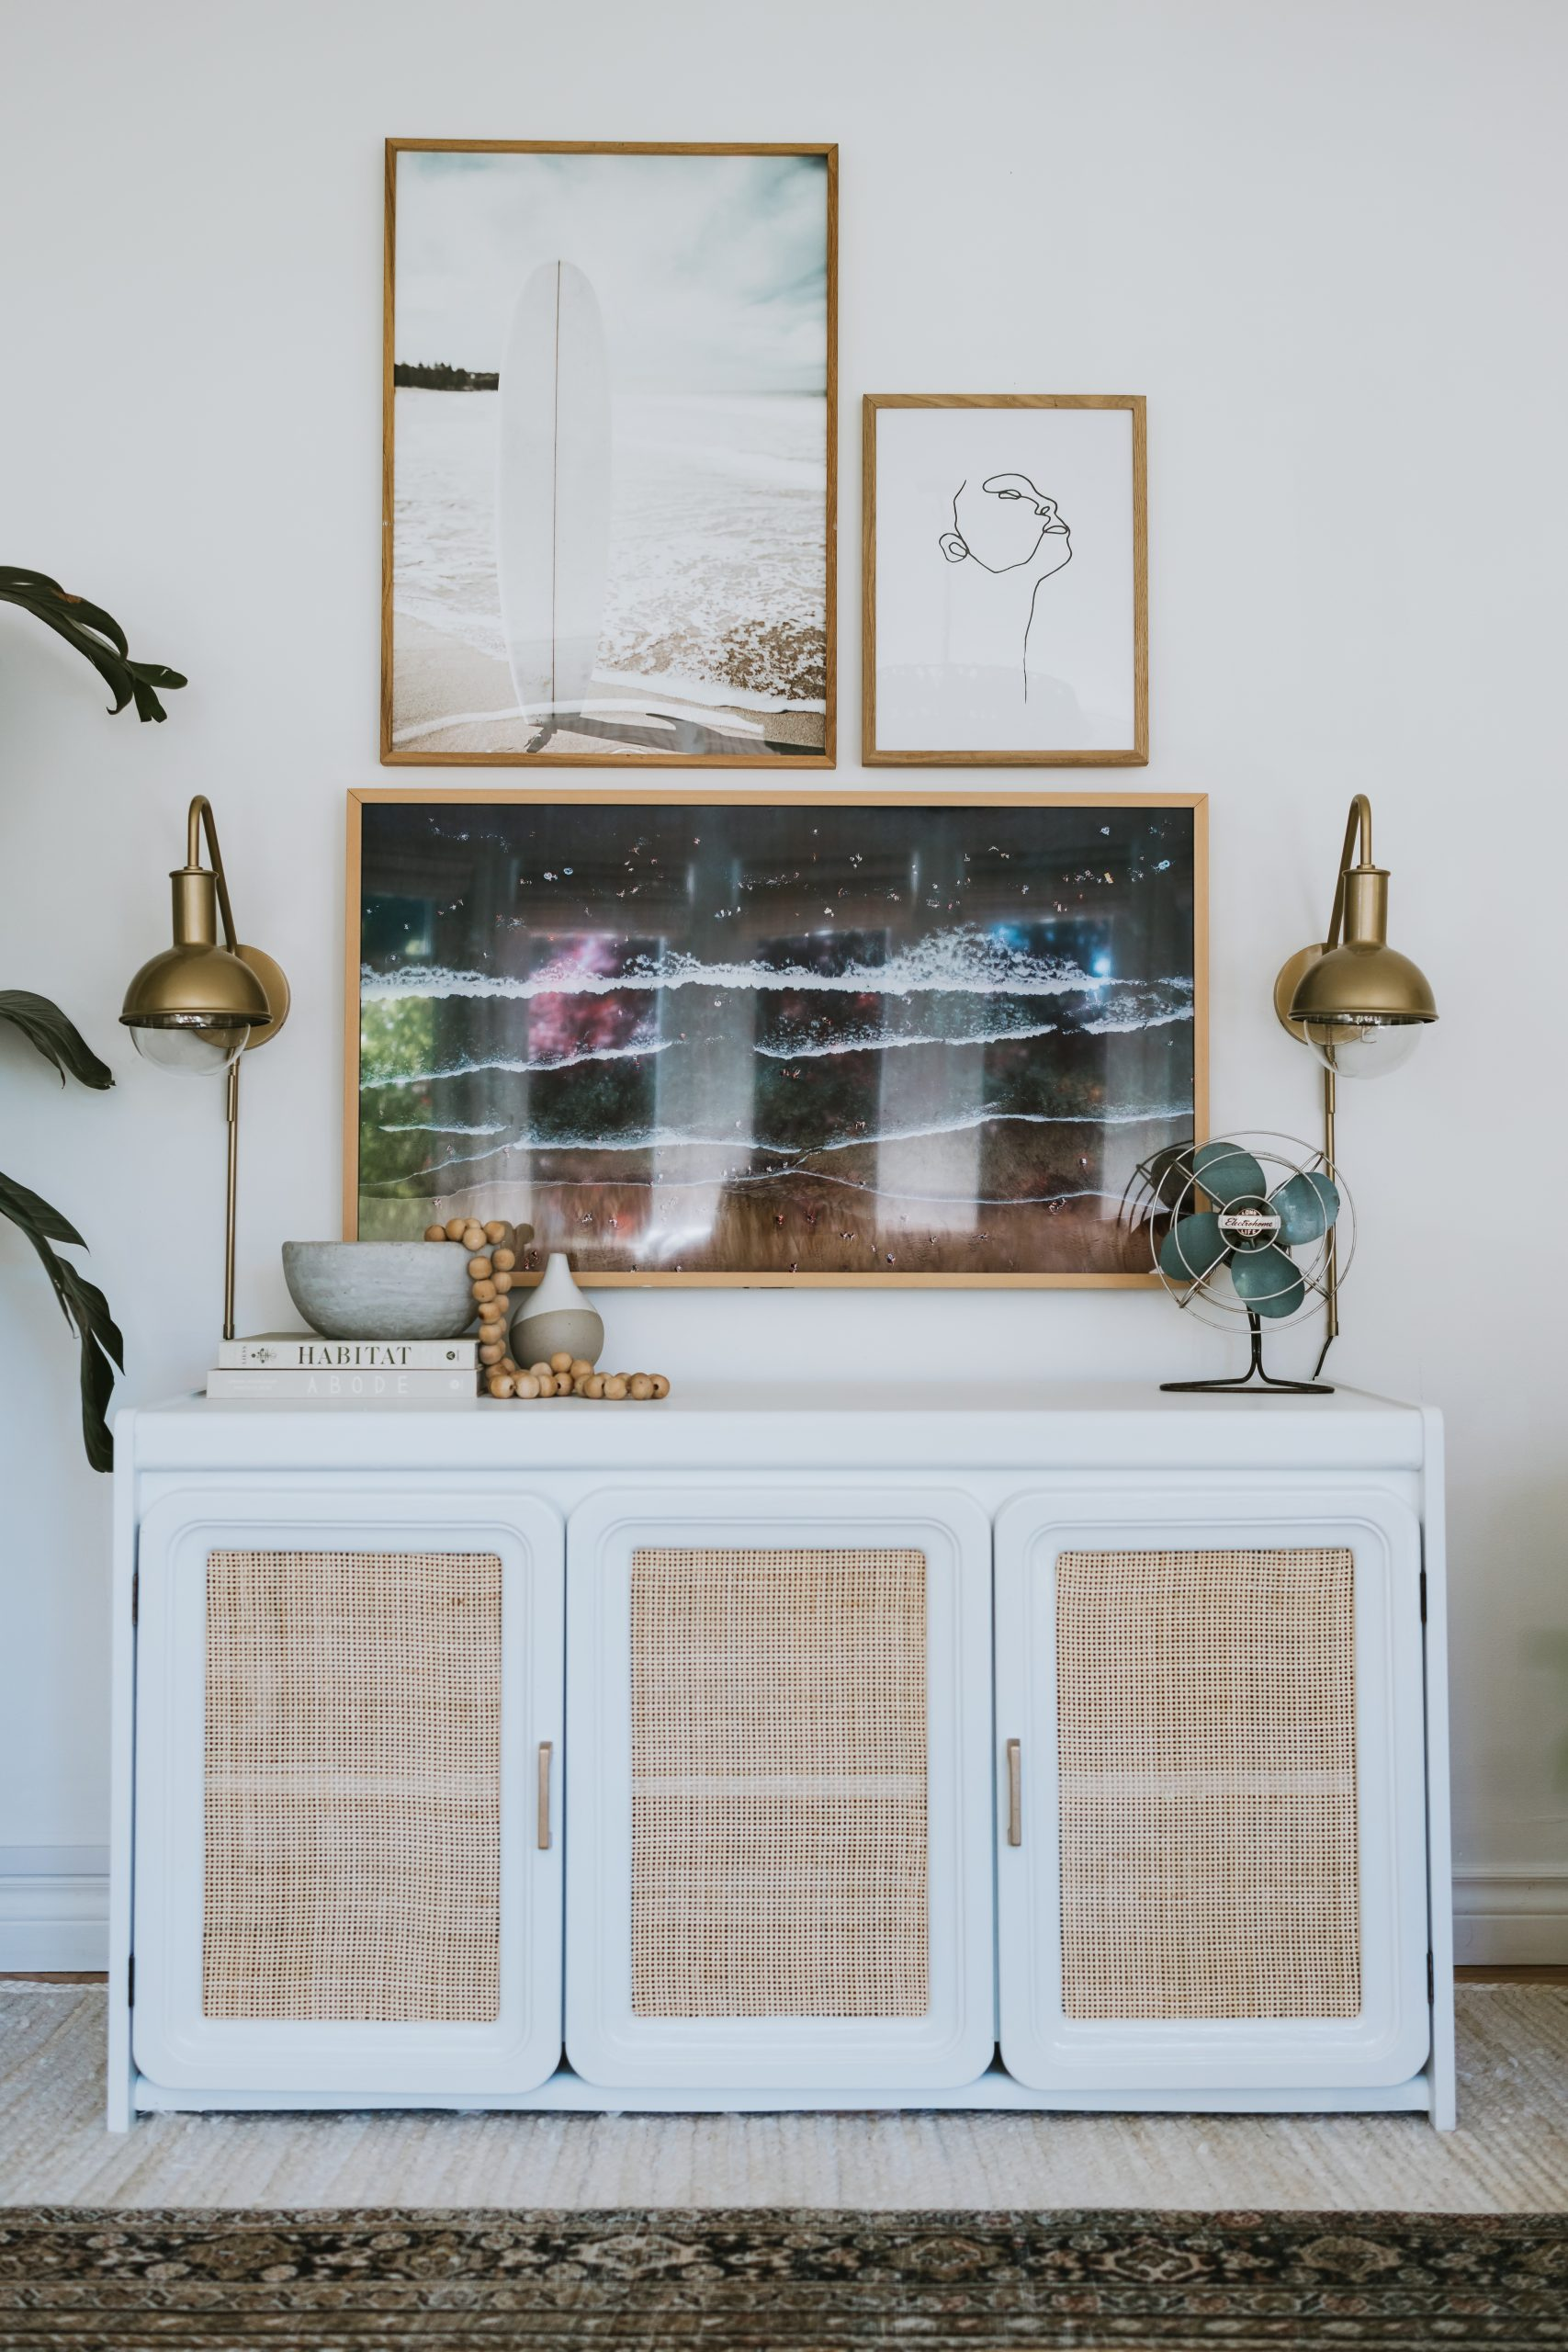 My Top 10 DIY Projects of 2020. In our house we want a beautiful house, but we don't want to spend a lot. Here are my 10 top DIY projects, almost all are under 100 dollars.